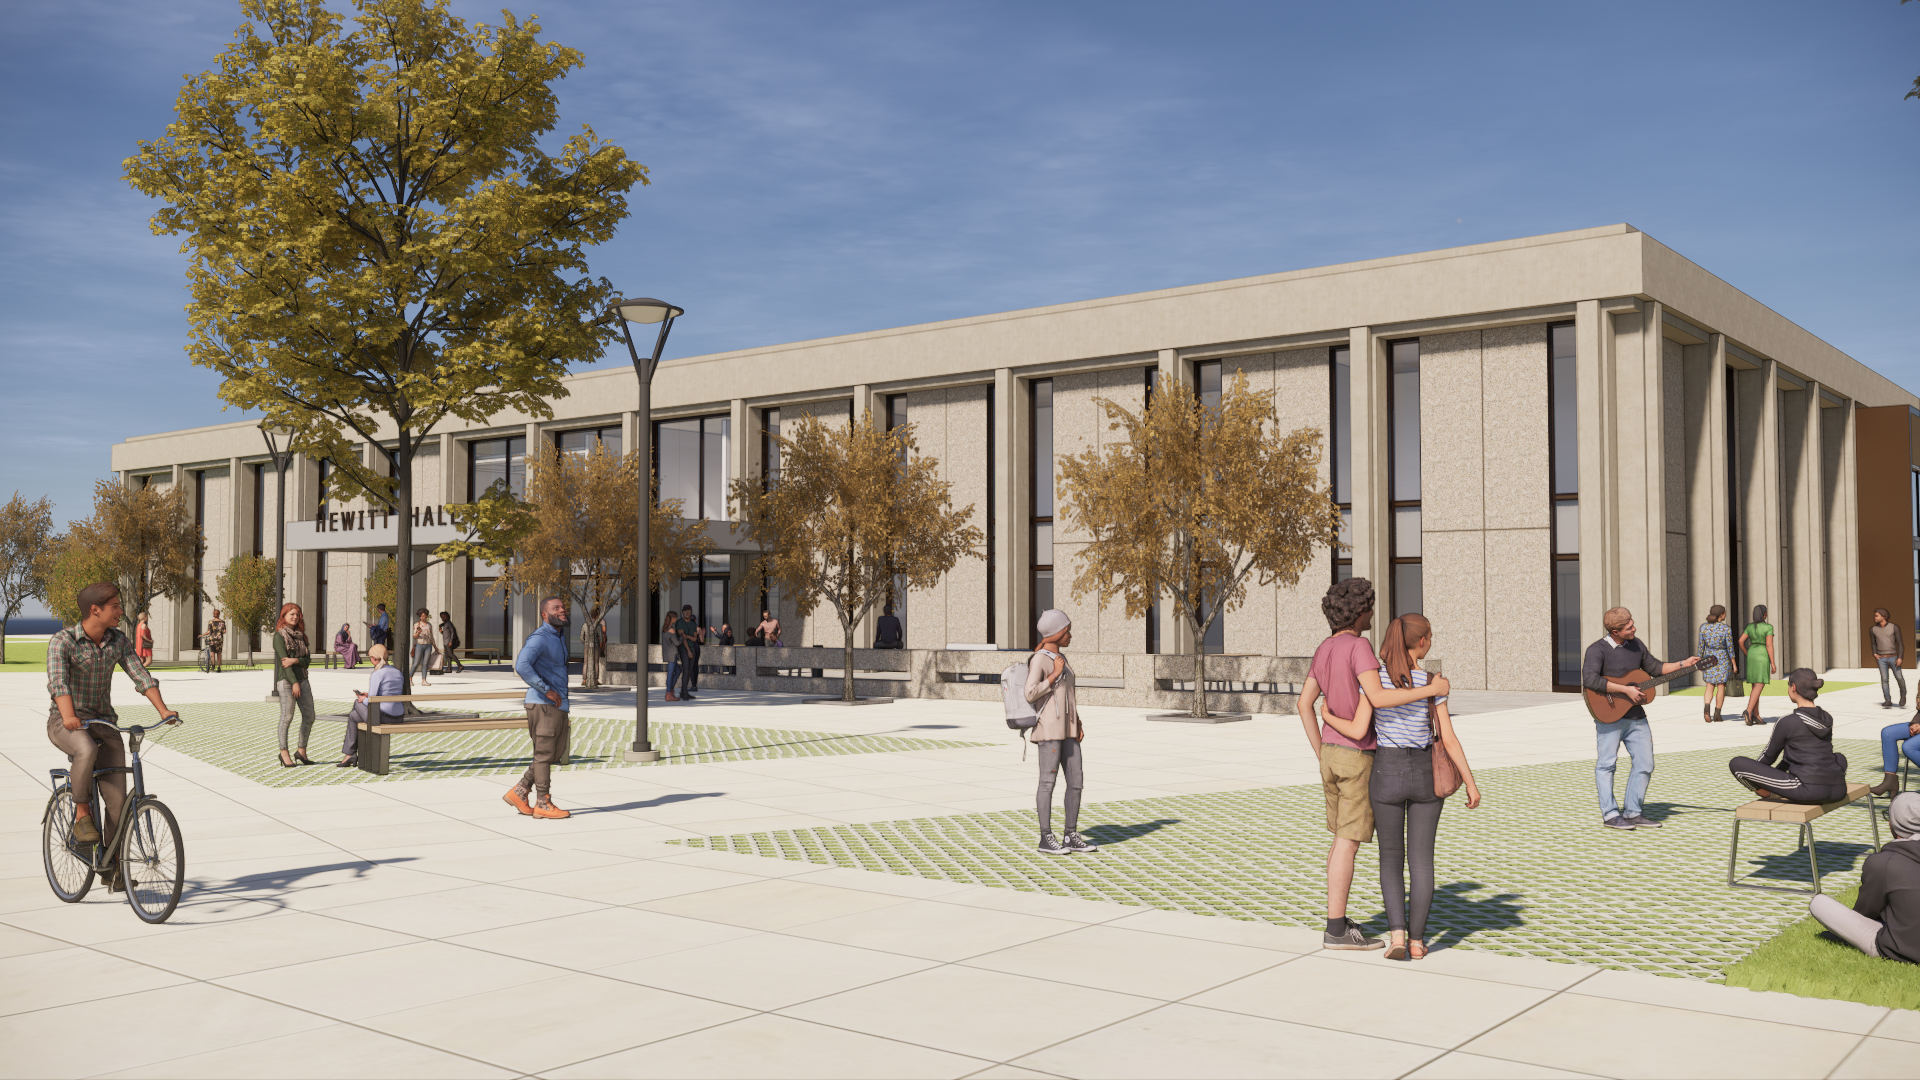 Exterior Rendering of the future Hewitt Hall at SUNY Oswego